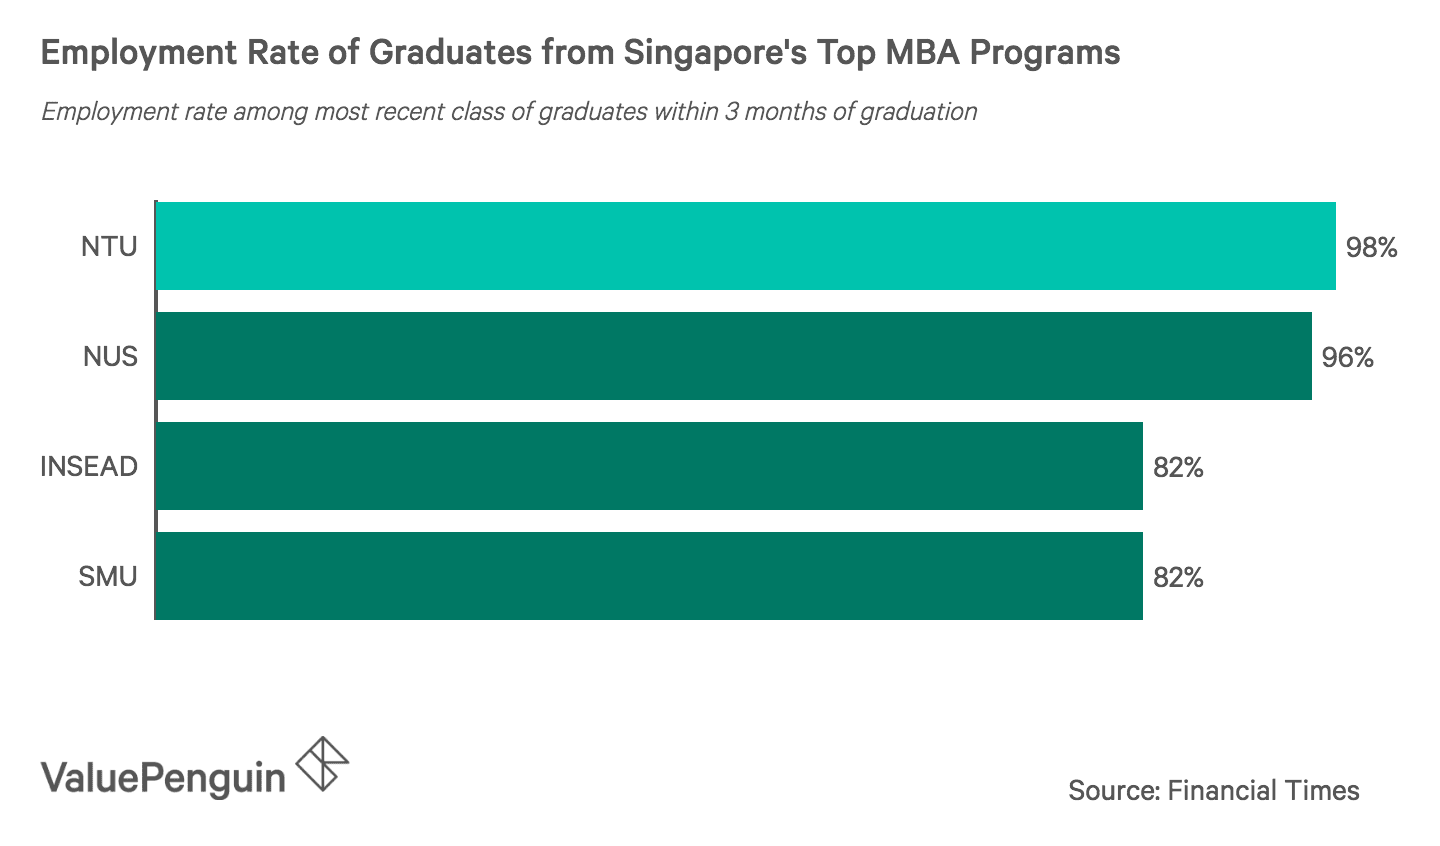 Employment Rate of Graduates from Singapore's Top MBA Programs